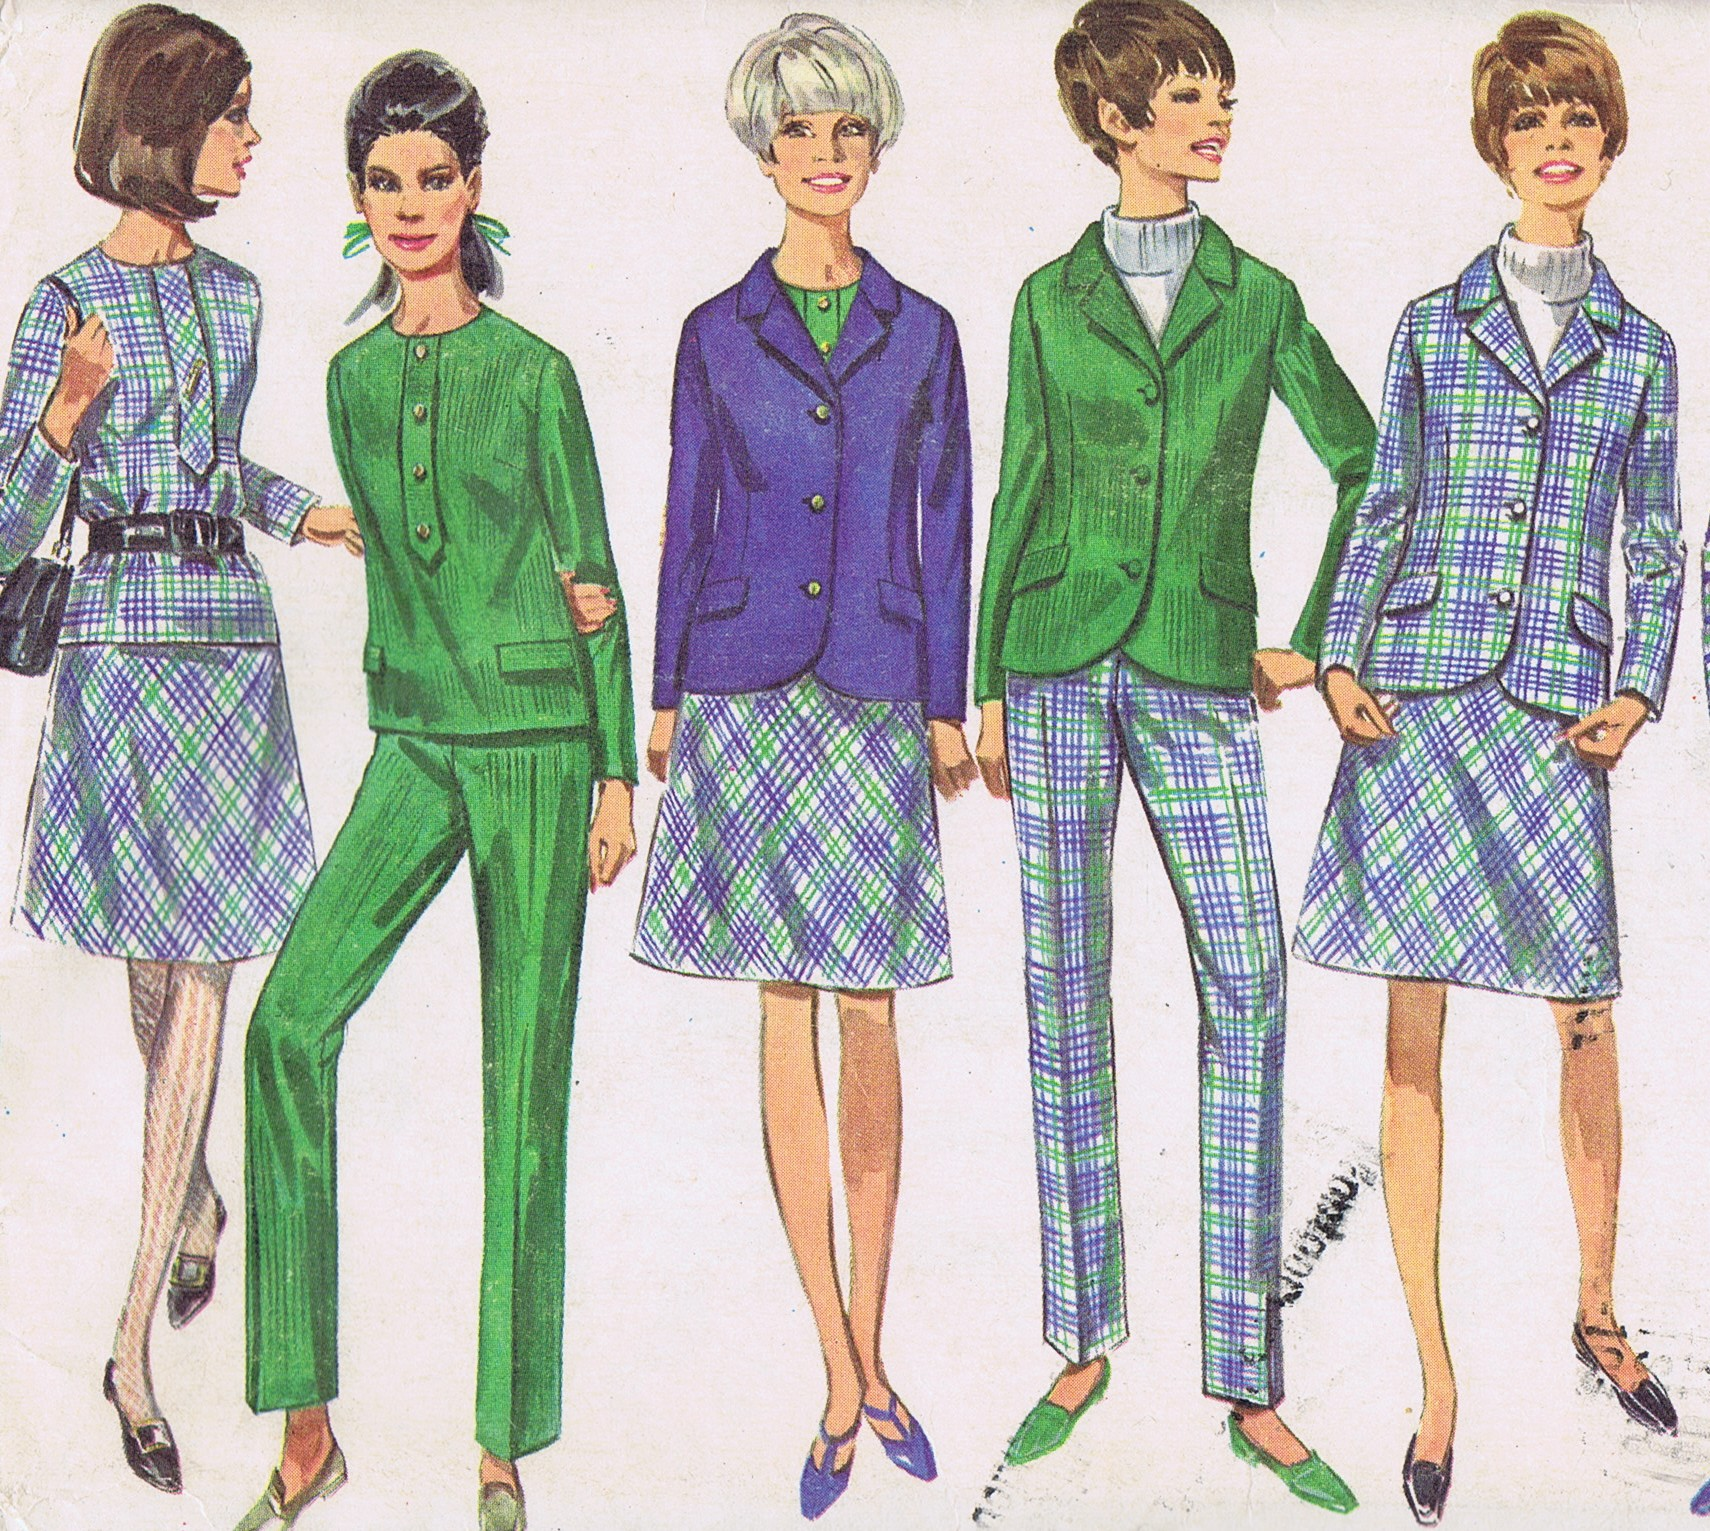 7191 Vintage Simplicity Pants Jacket Skirt 60s Sewing Pattern Bust 36 Hip 40 Inches